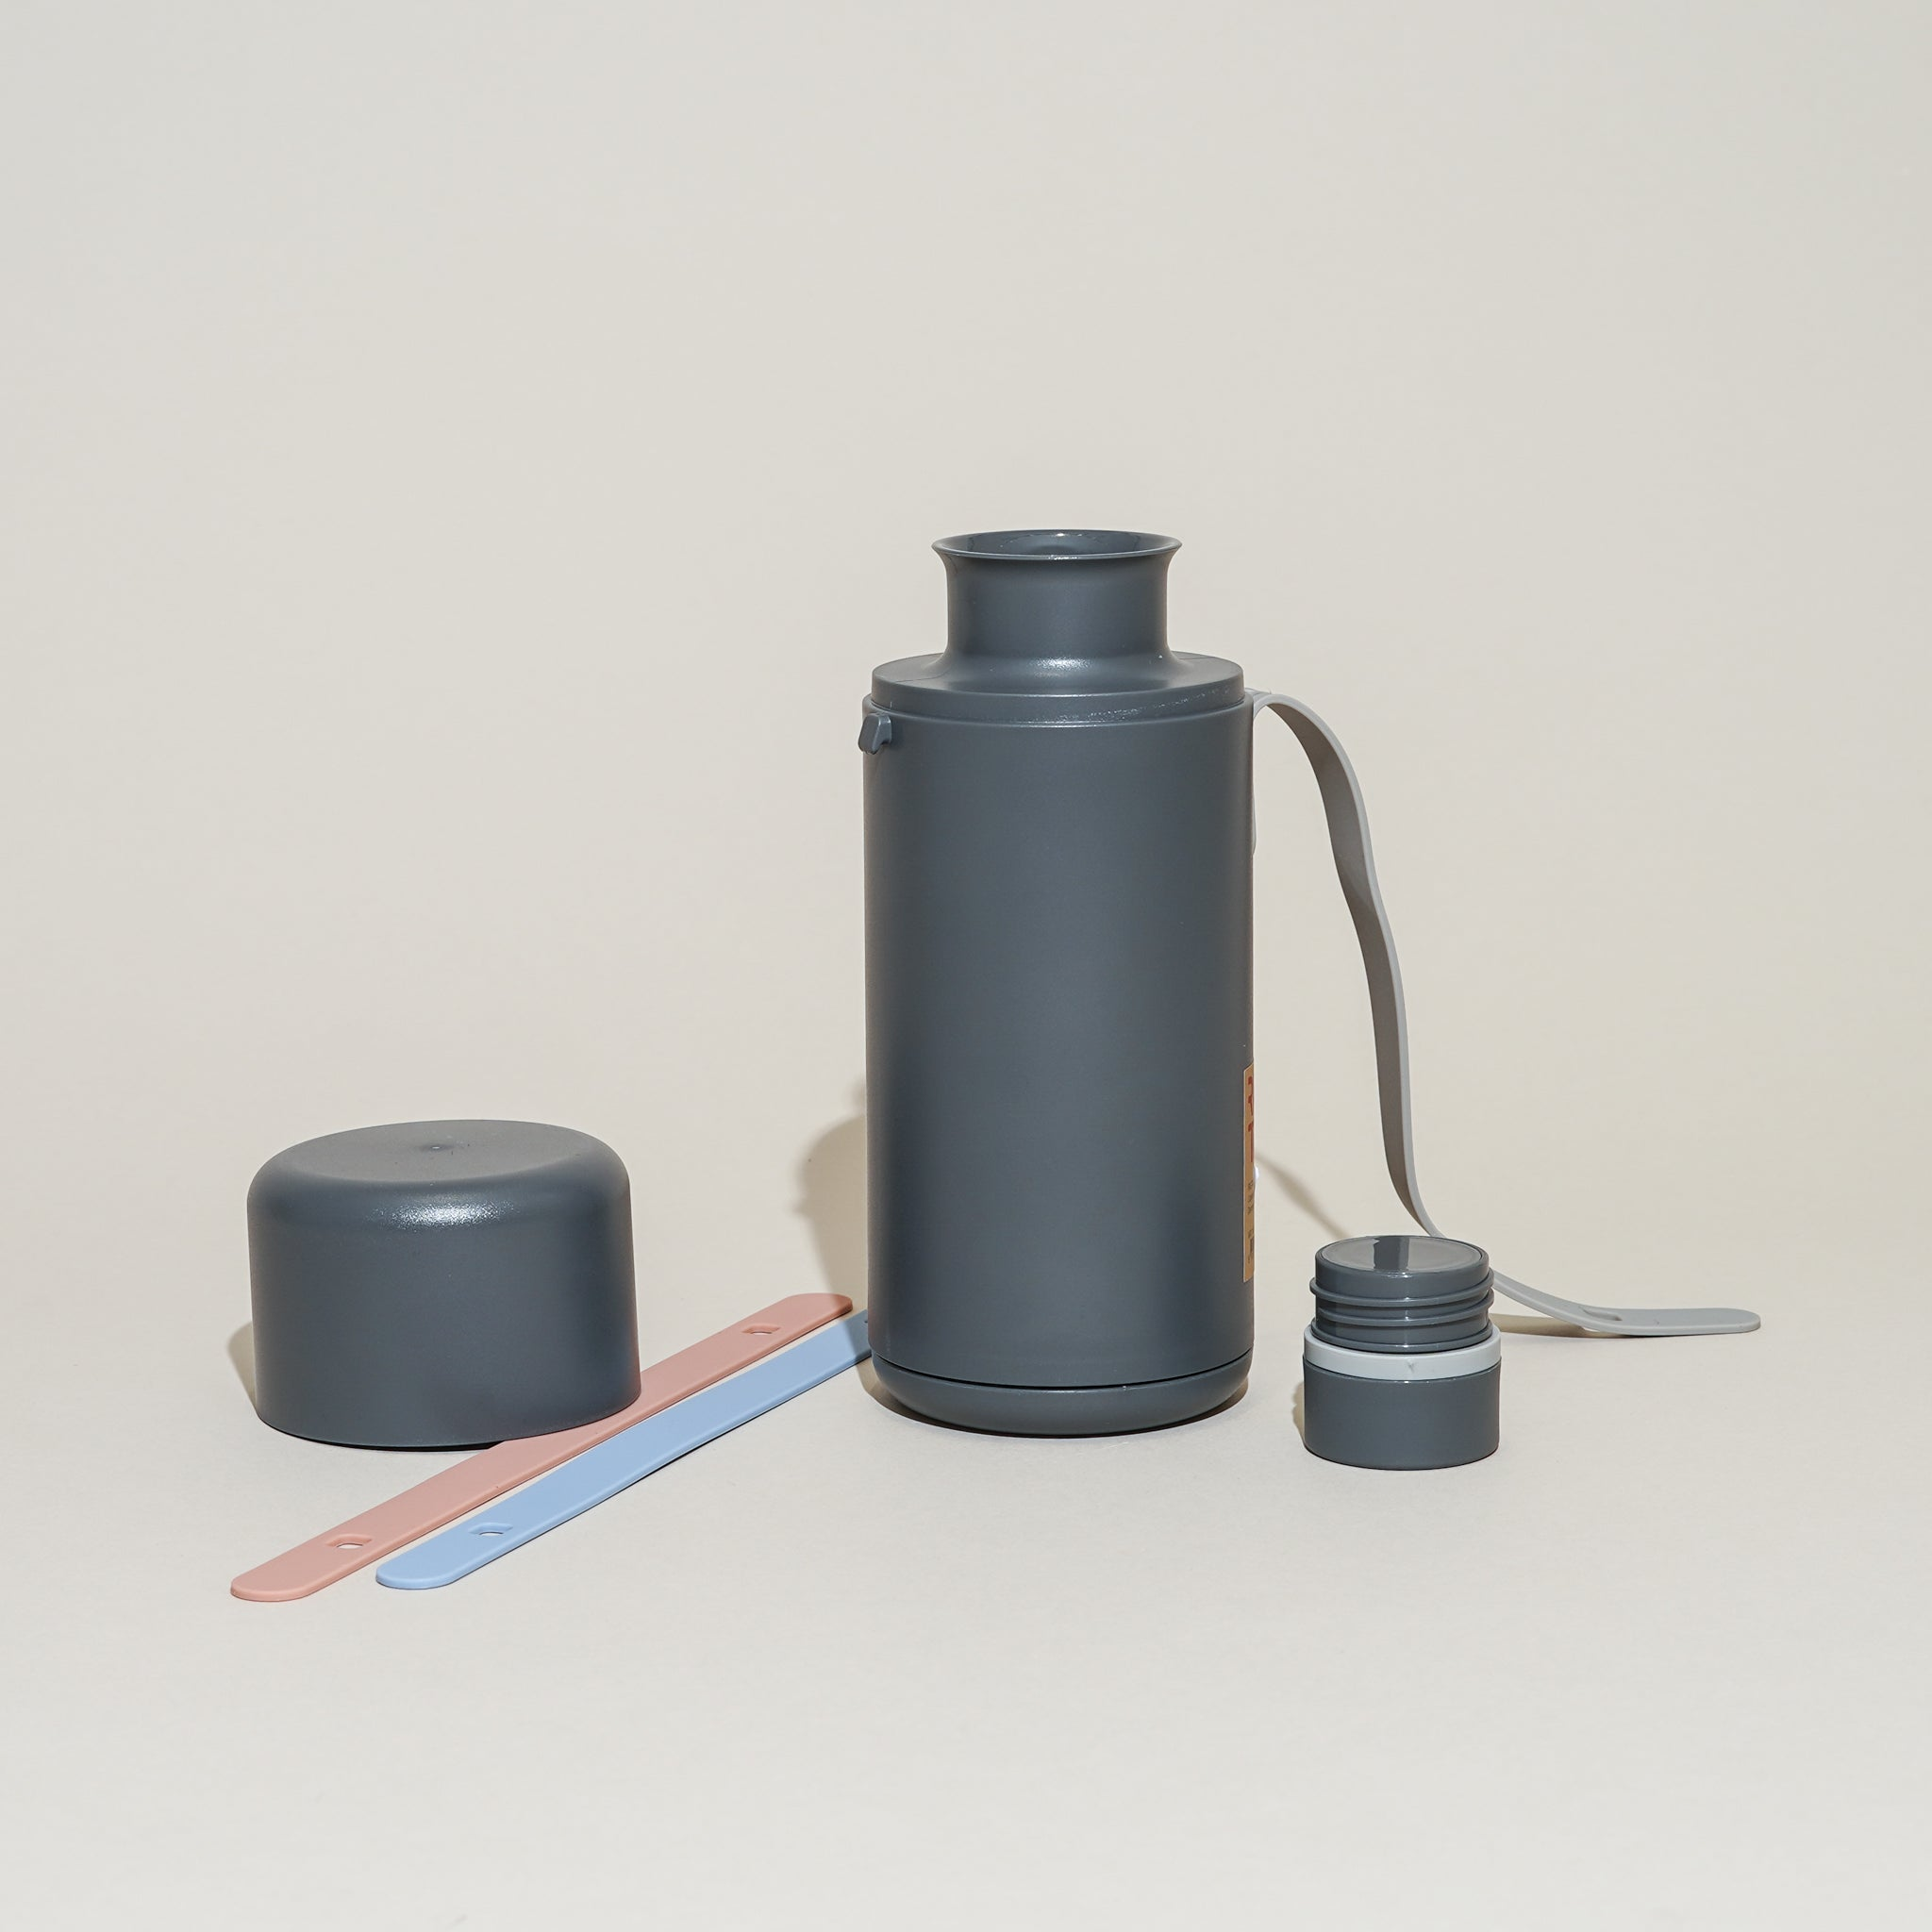 Available at Commonplace design shop, the Keep-It Cool Water Bottle from Rig-Tig by Stelton.